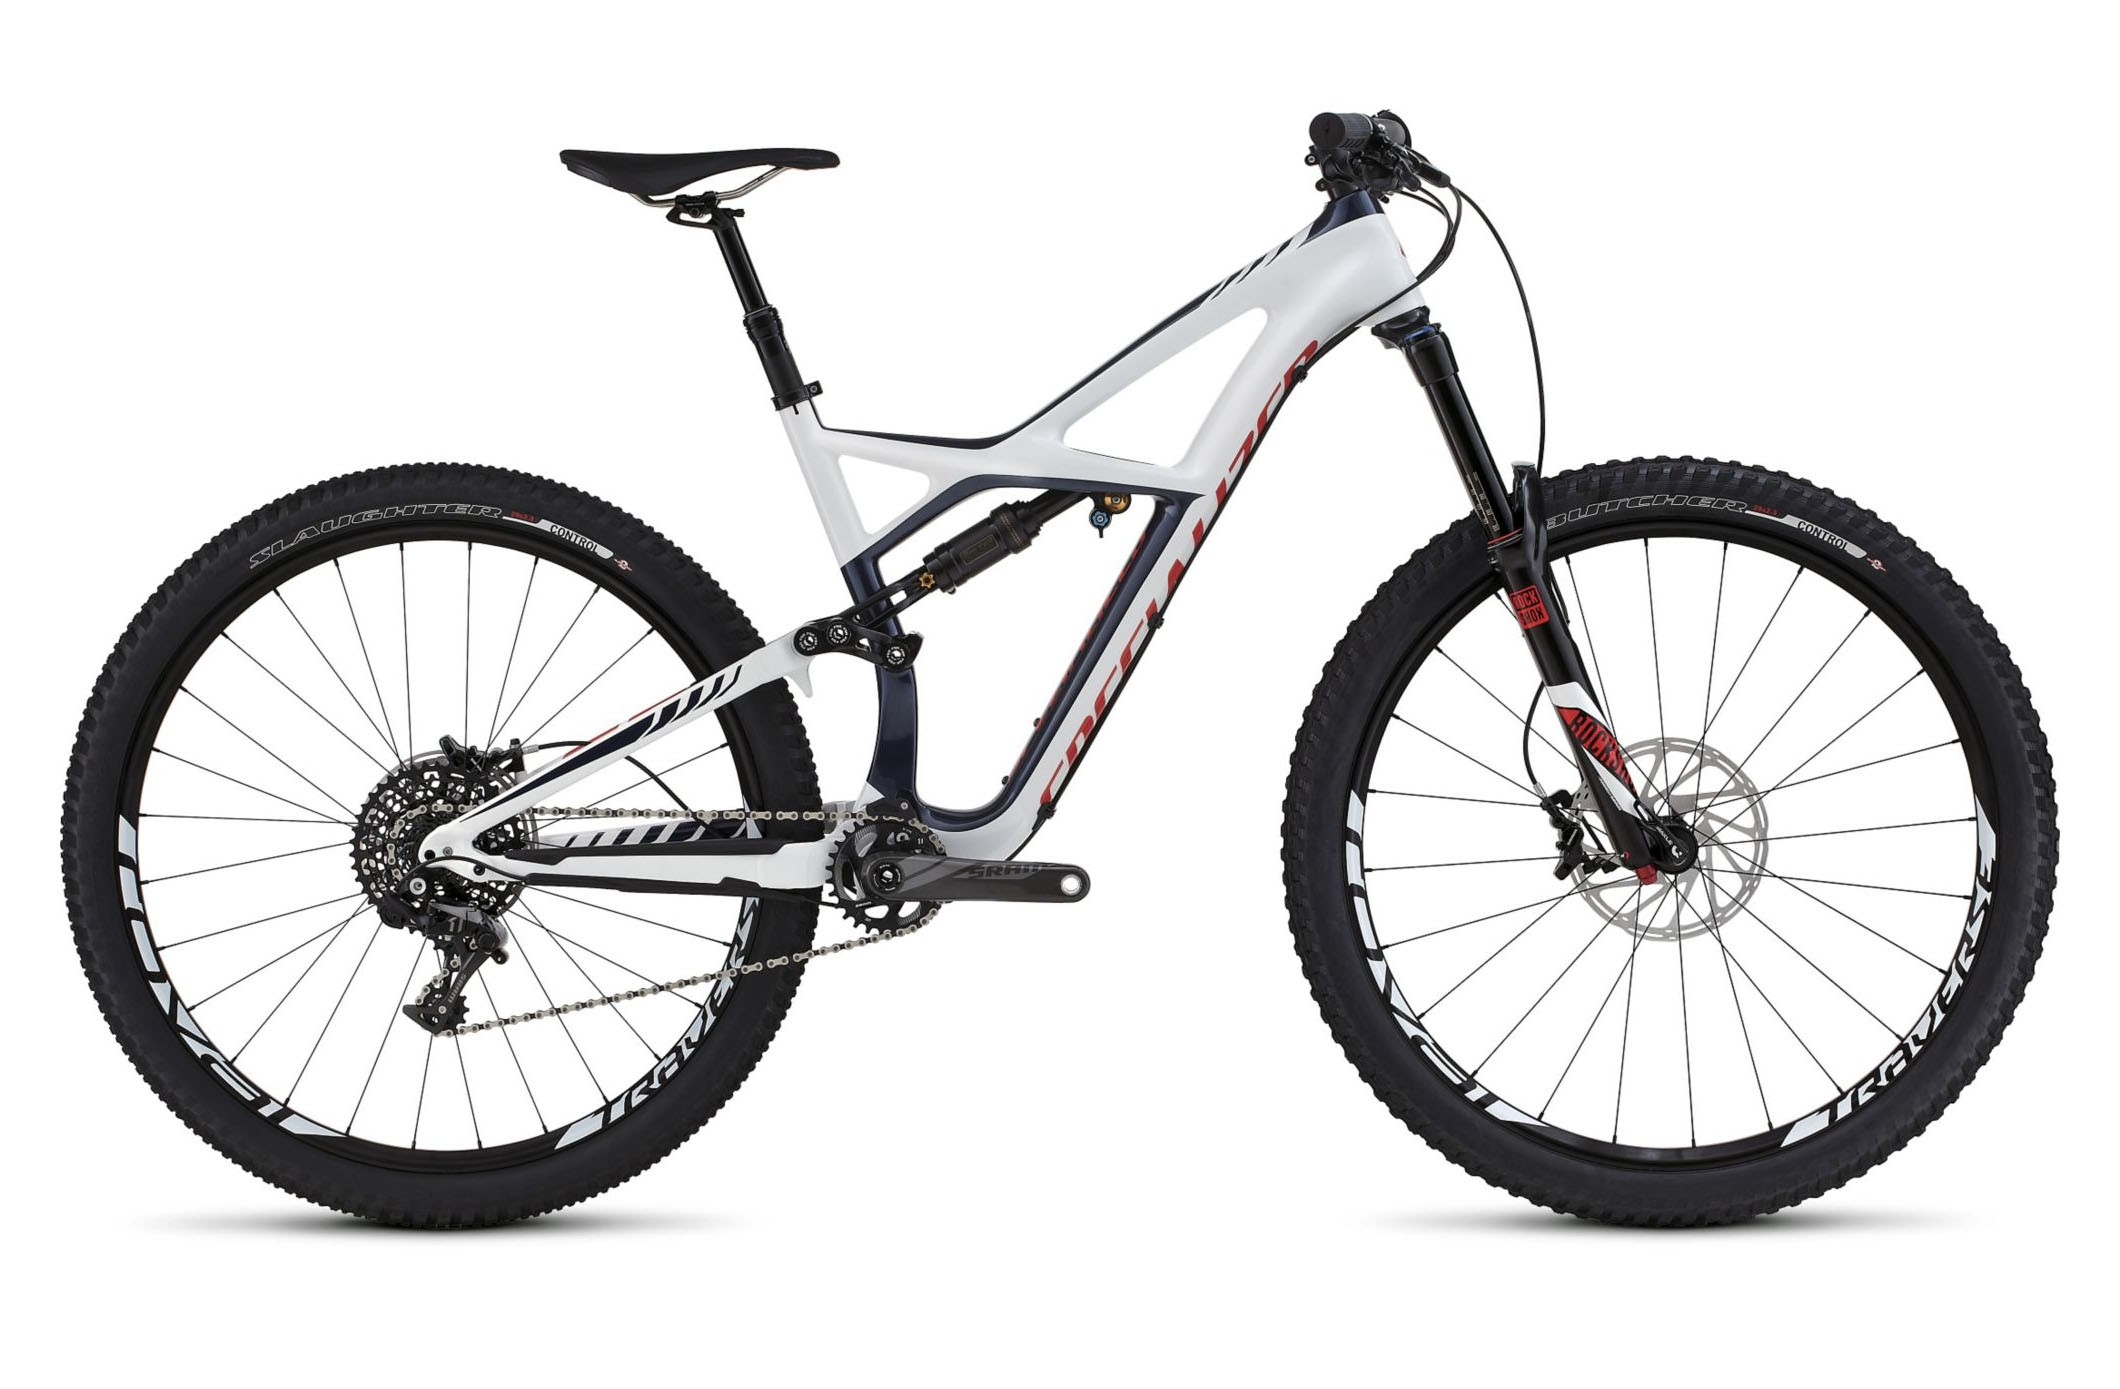 Горный велосипед Specialized Enduro Expert Carbon 29 (2016)